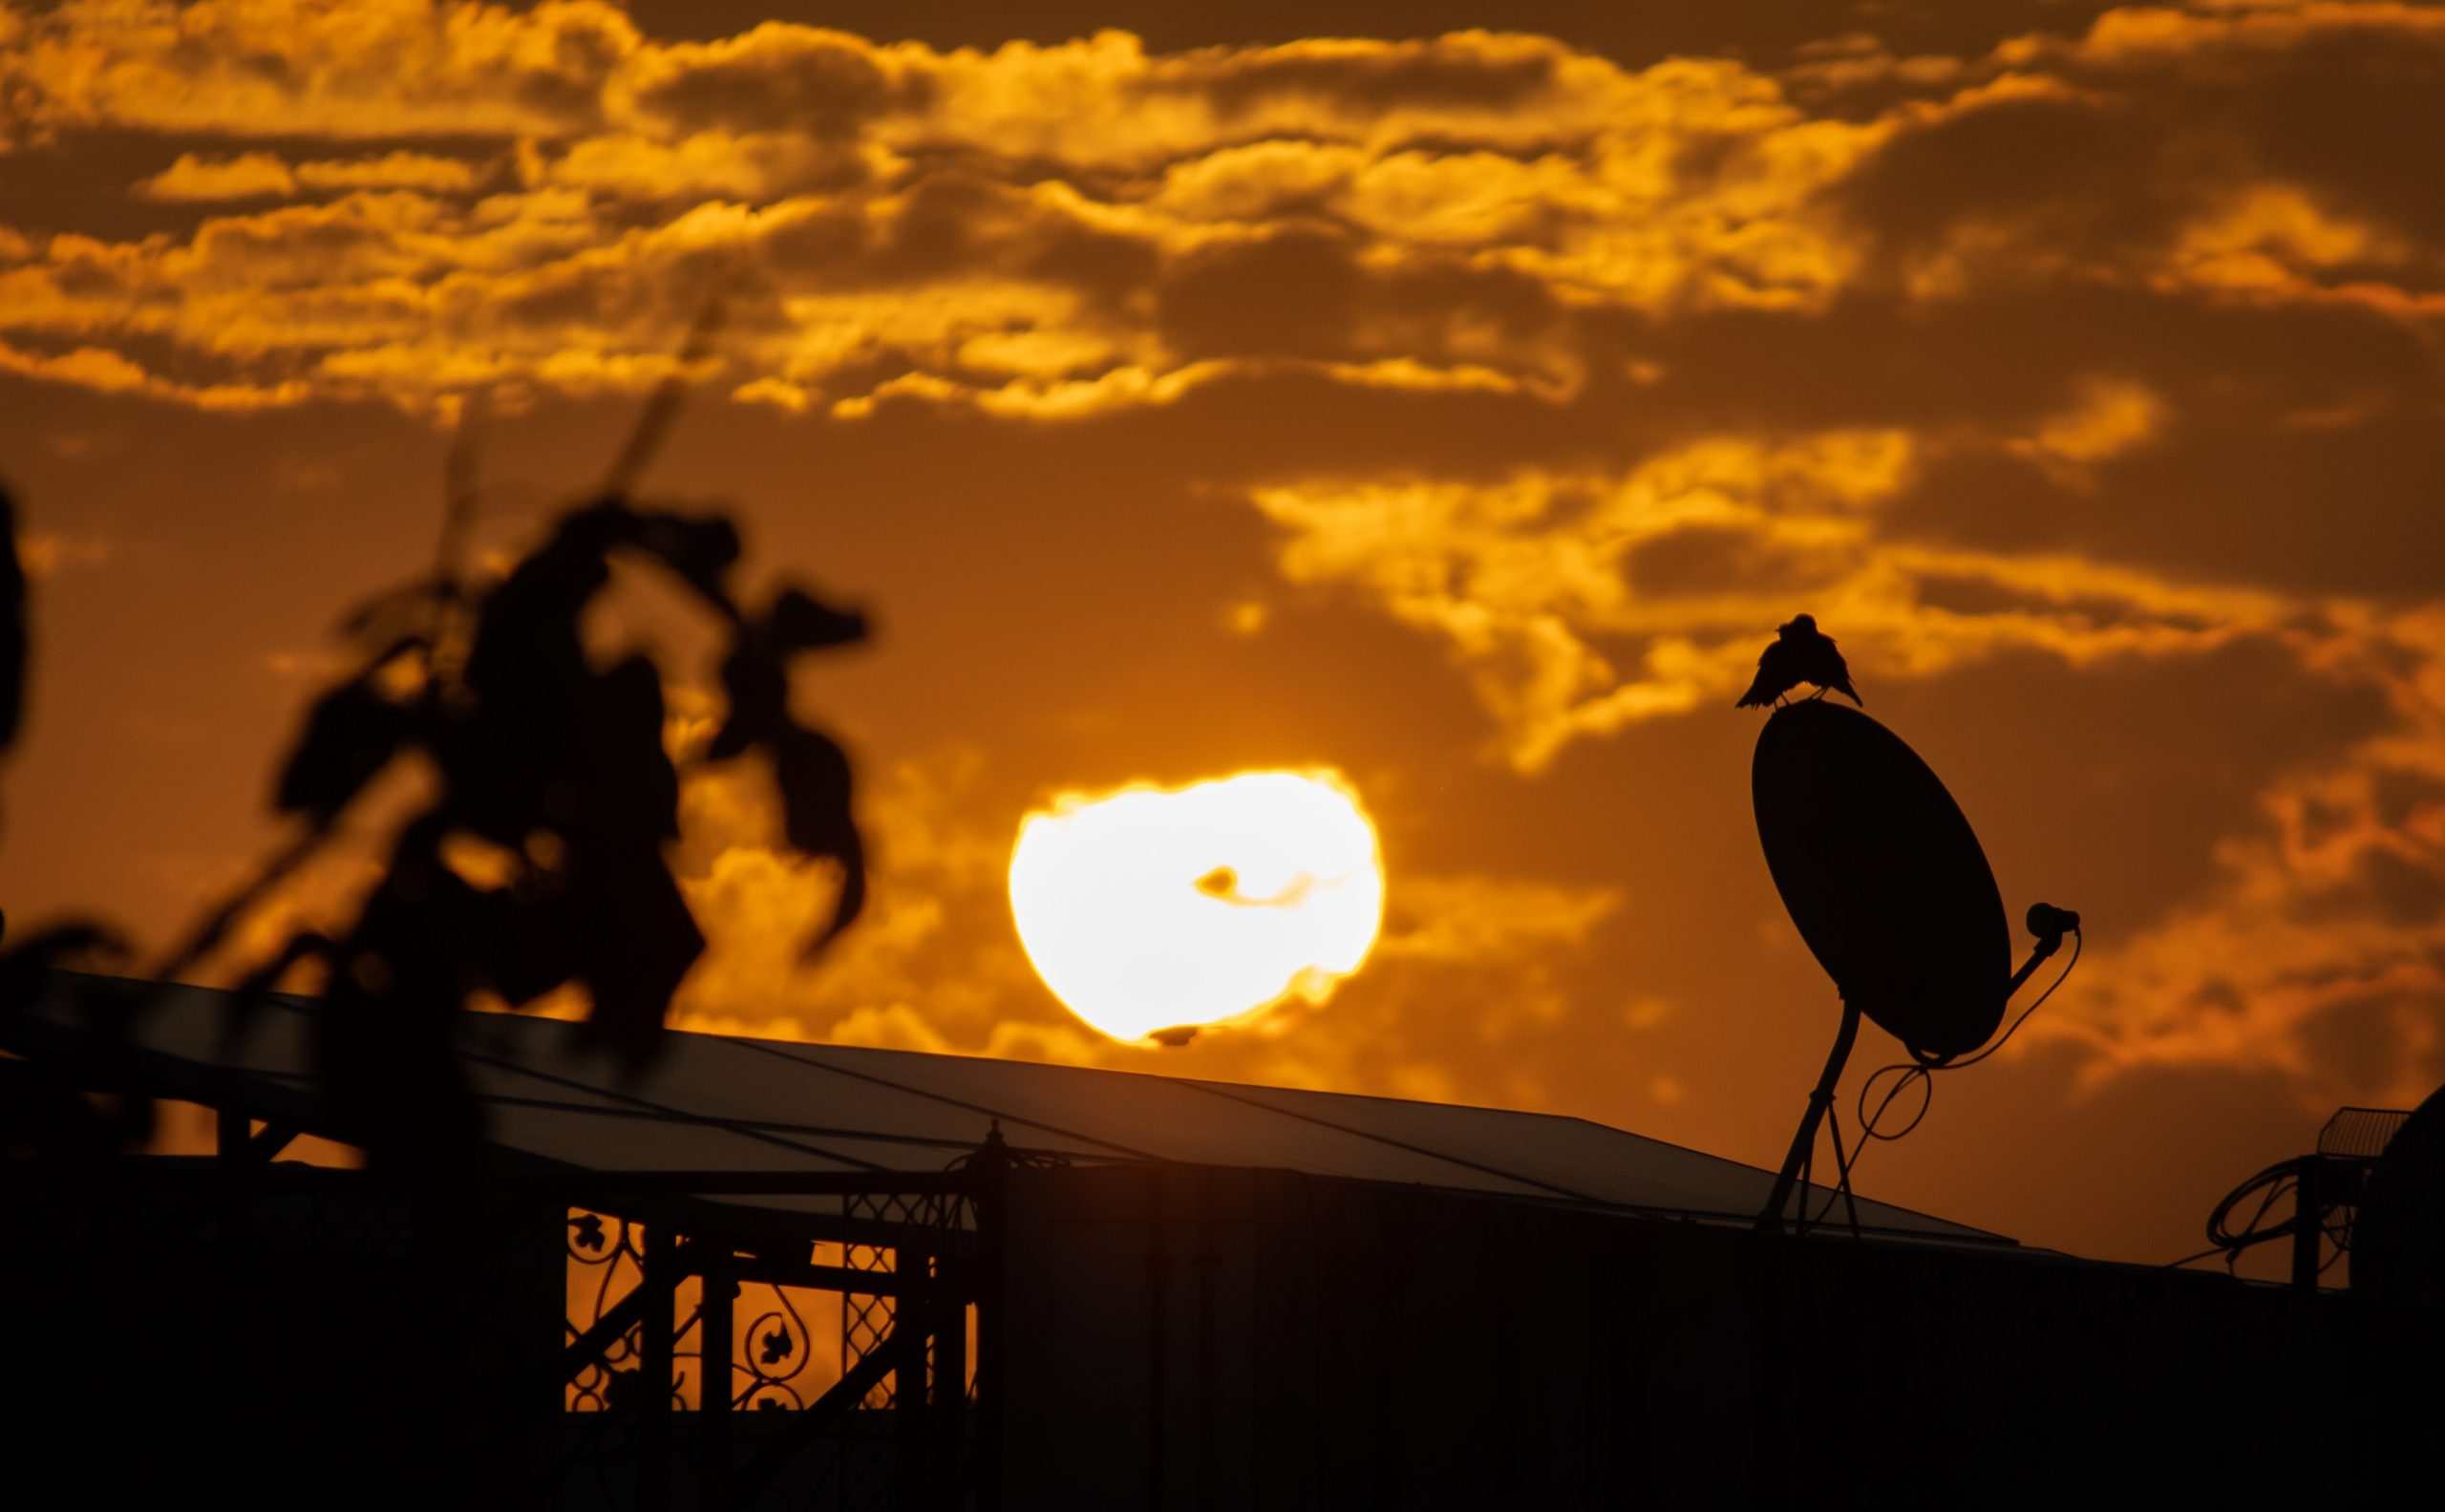 Birds perched on a satellite dish